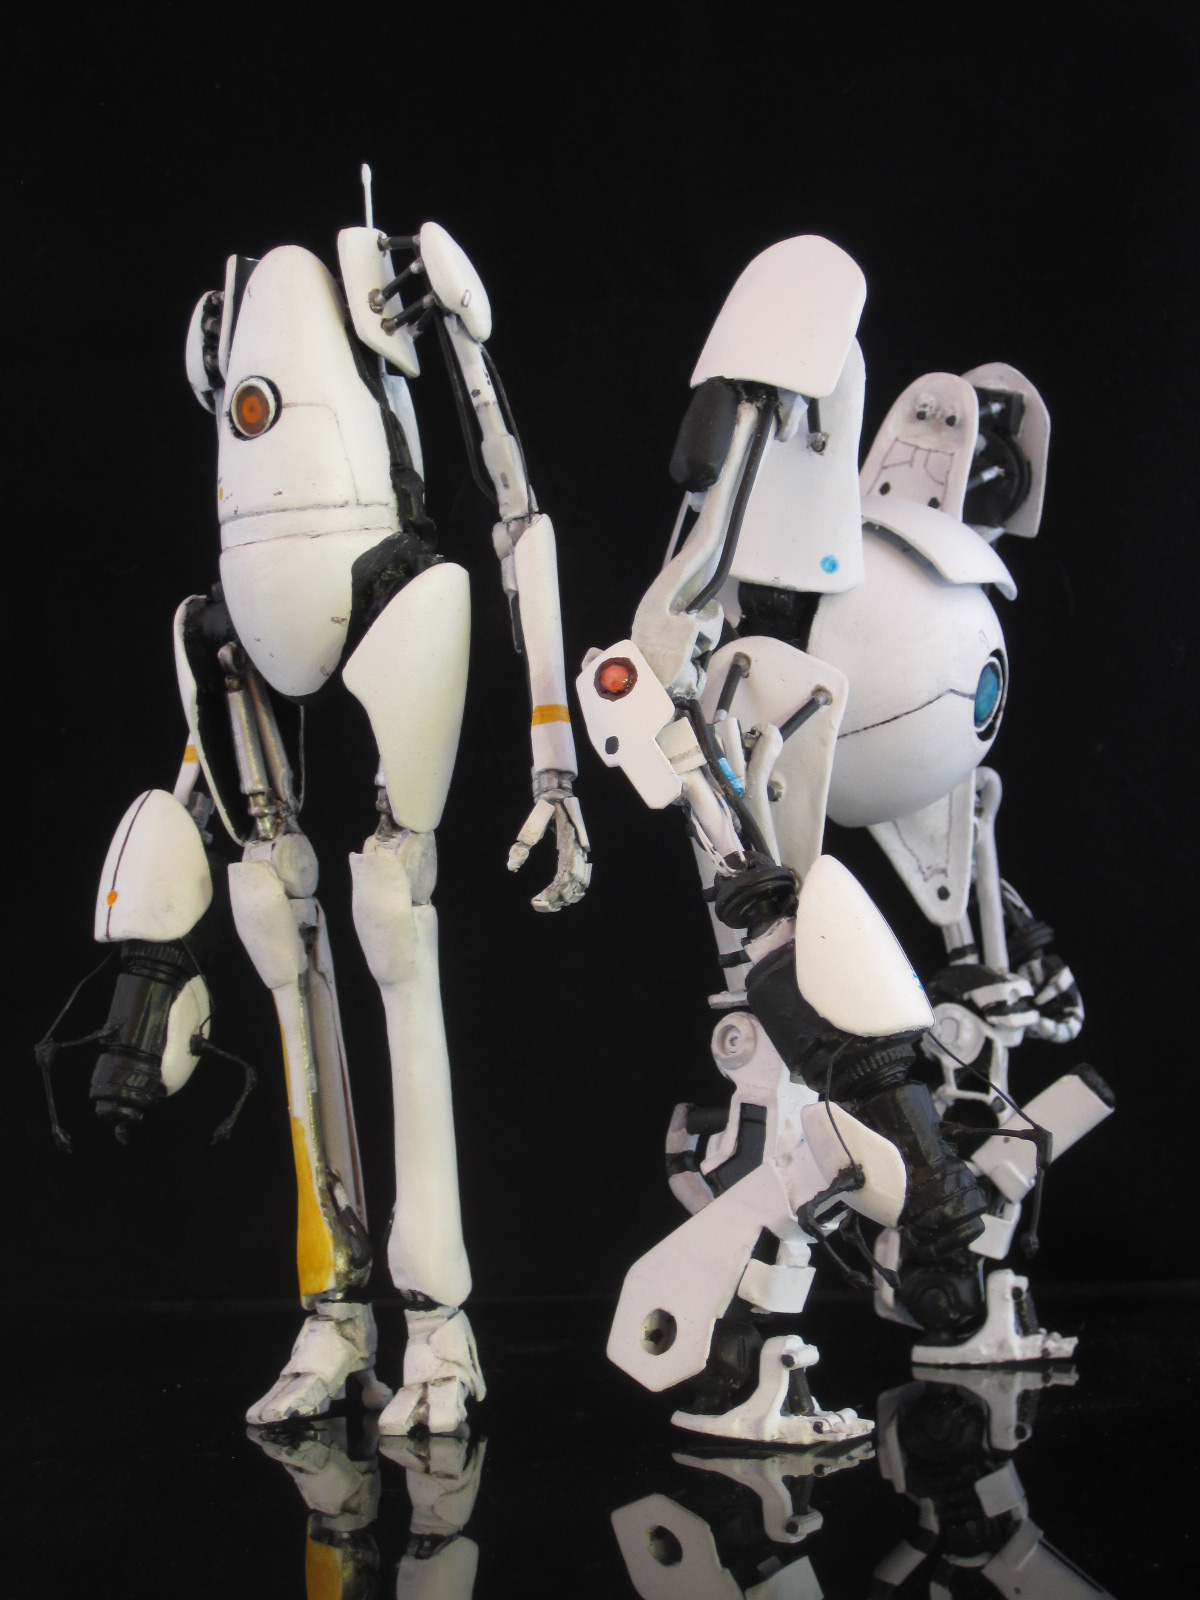 The Best Real Life Portal 2 Robots Gif